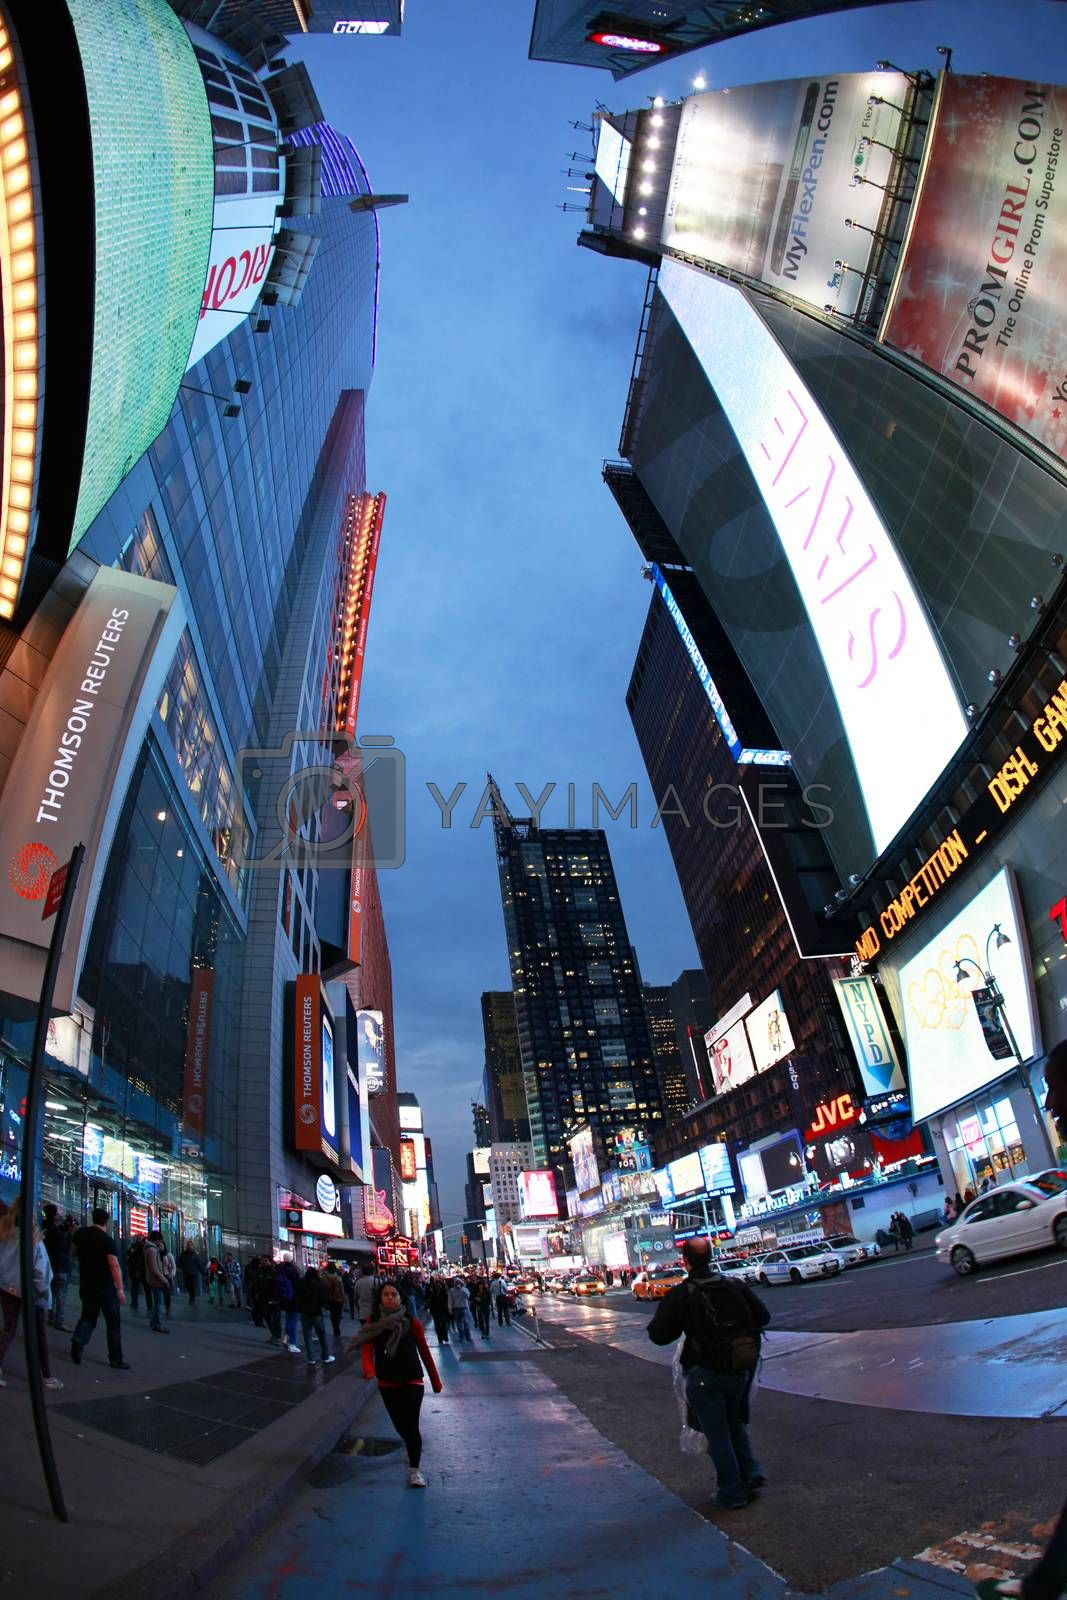 New York, USA - October 9, 2012: Times Square, featured with Broadway Theaters and huge number of LED signs, is a symbol of New York City and the United States, Manhattan, New York City